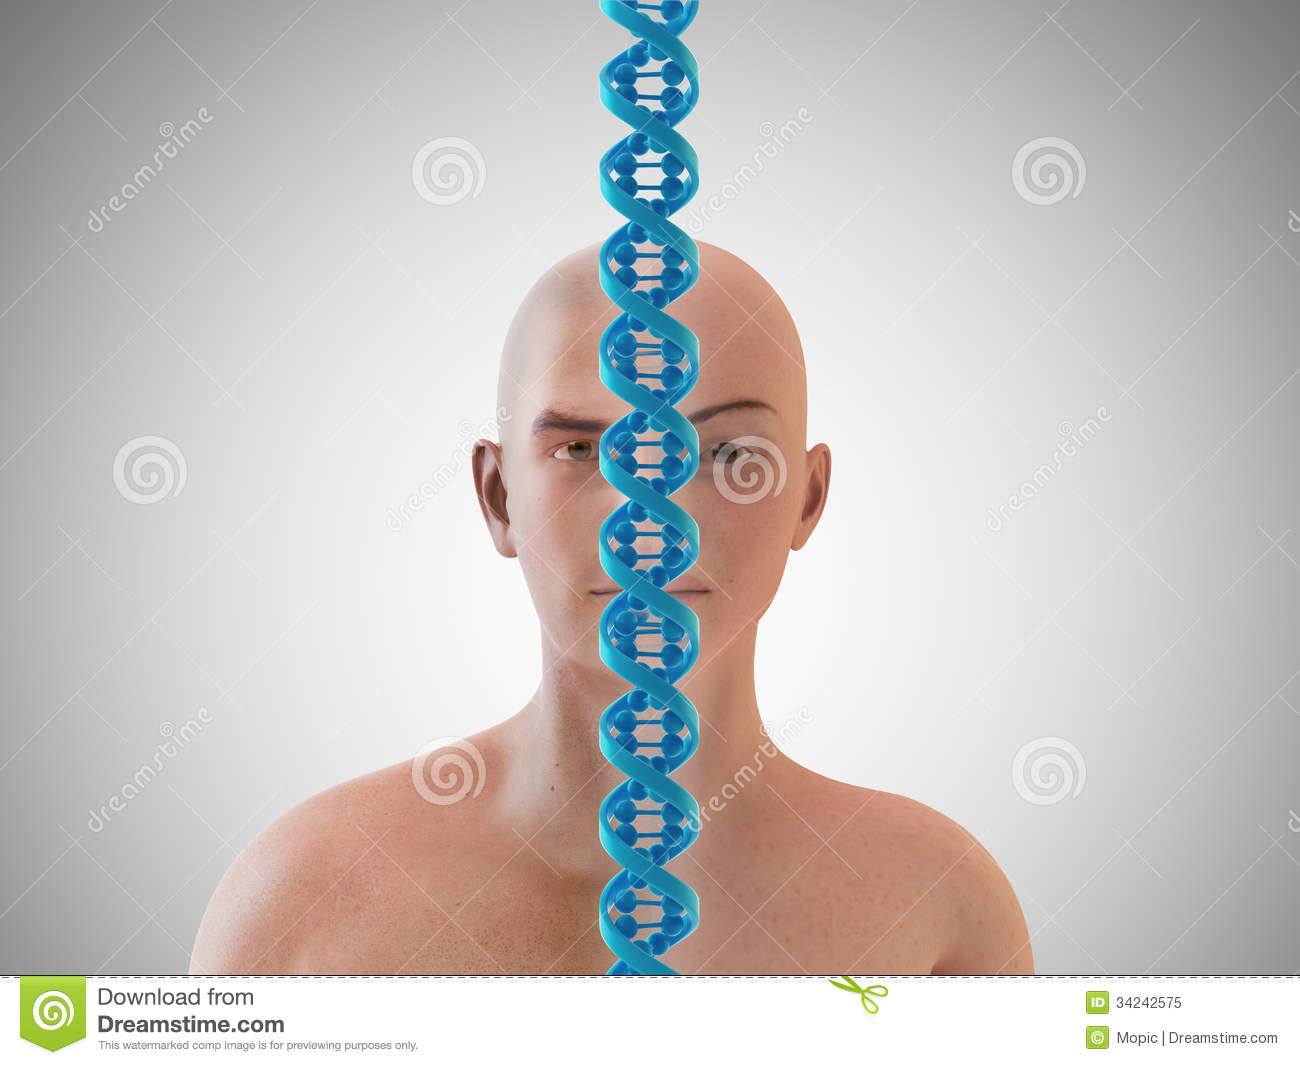 Genetics And Heredity Concept Royalty Free Stock Photo